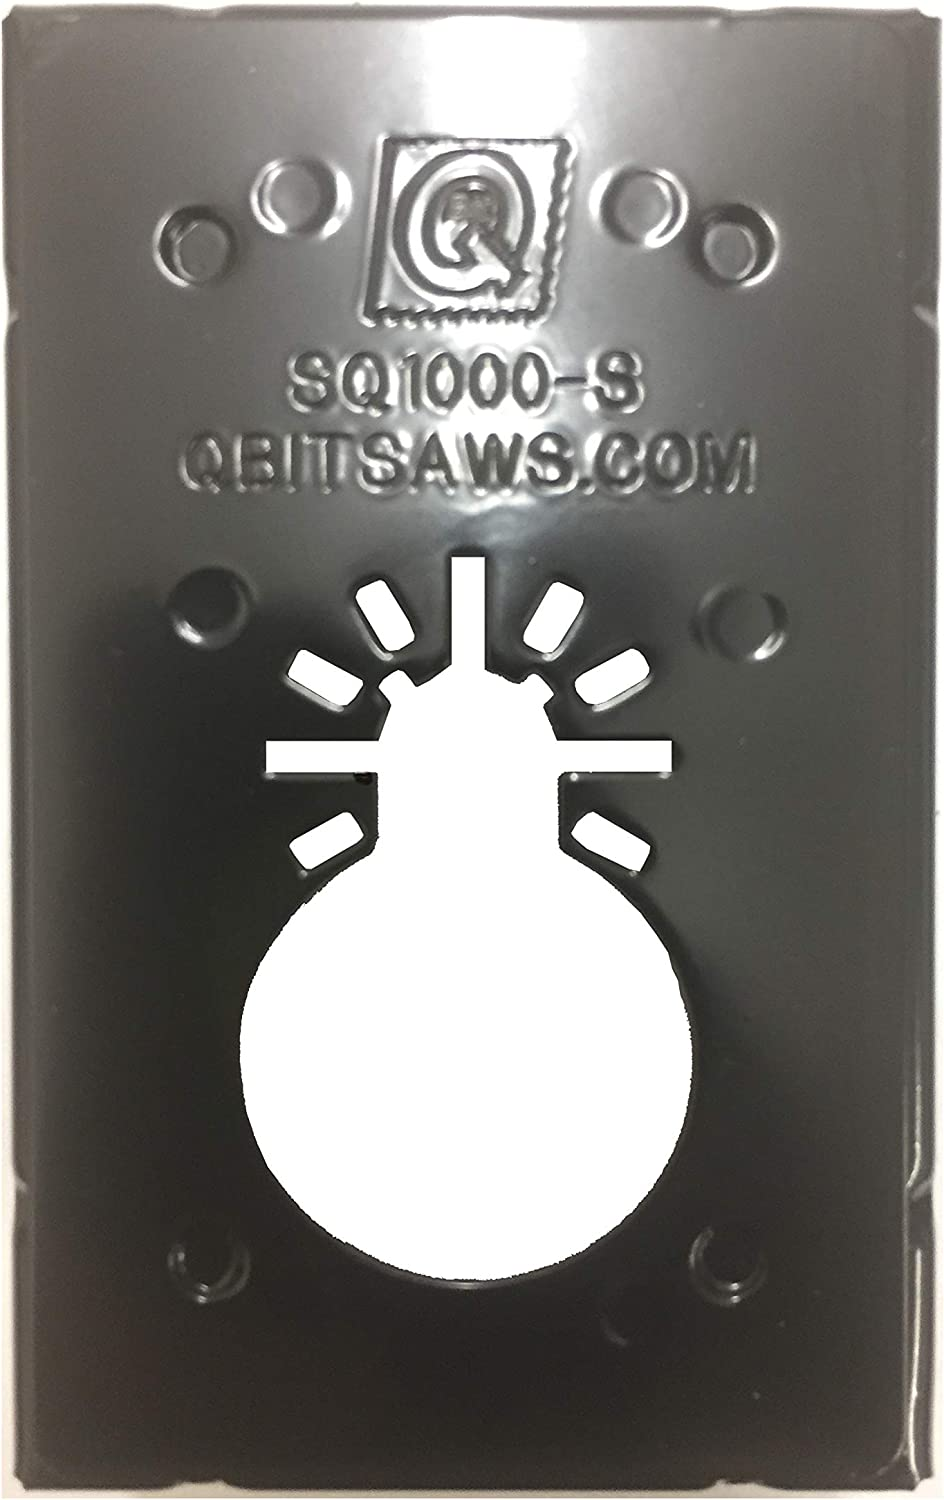 QBit SQ1000 Contractor 4 Kit Oscillating Multi Tool Saw Blade Cut Wall Outlet